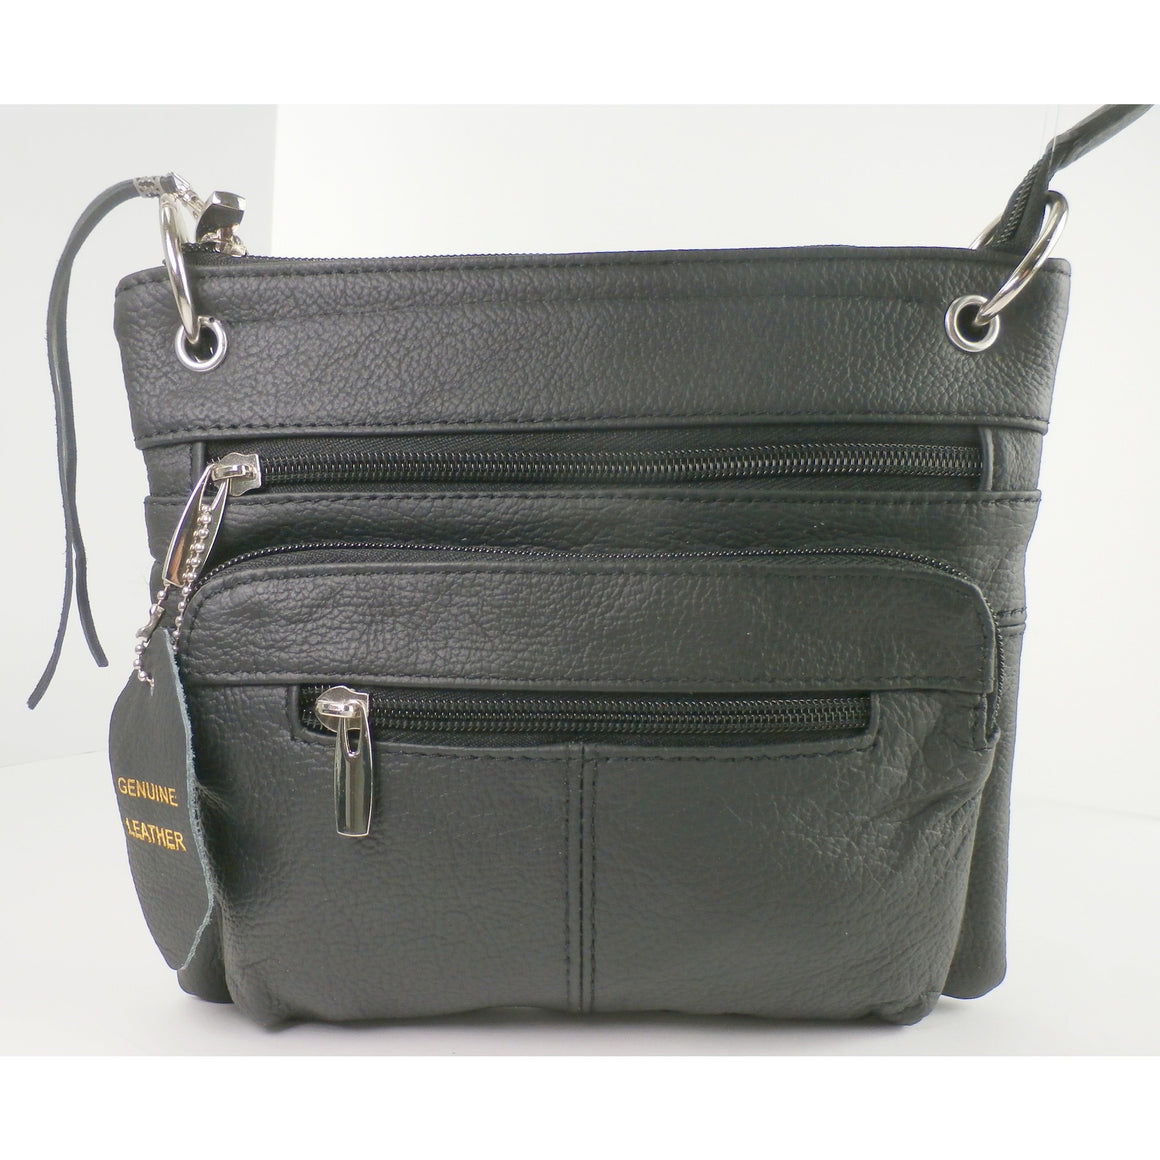 Candi - Genuine Leather Concealed Mini Carry Bag -  Wear, Carry or Drop in a Purse